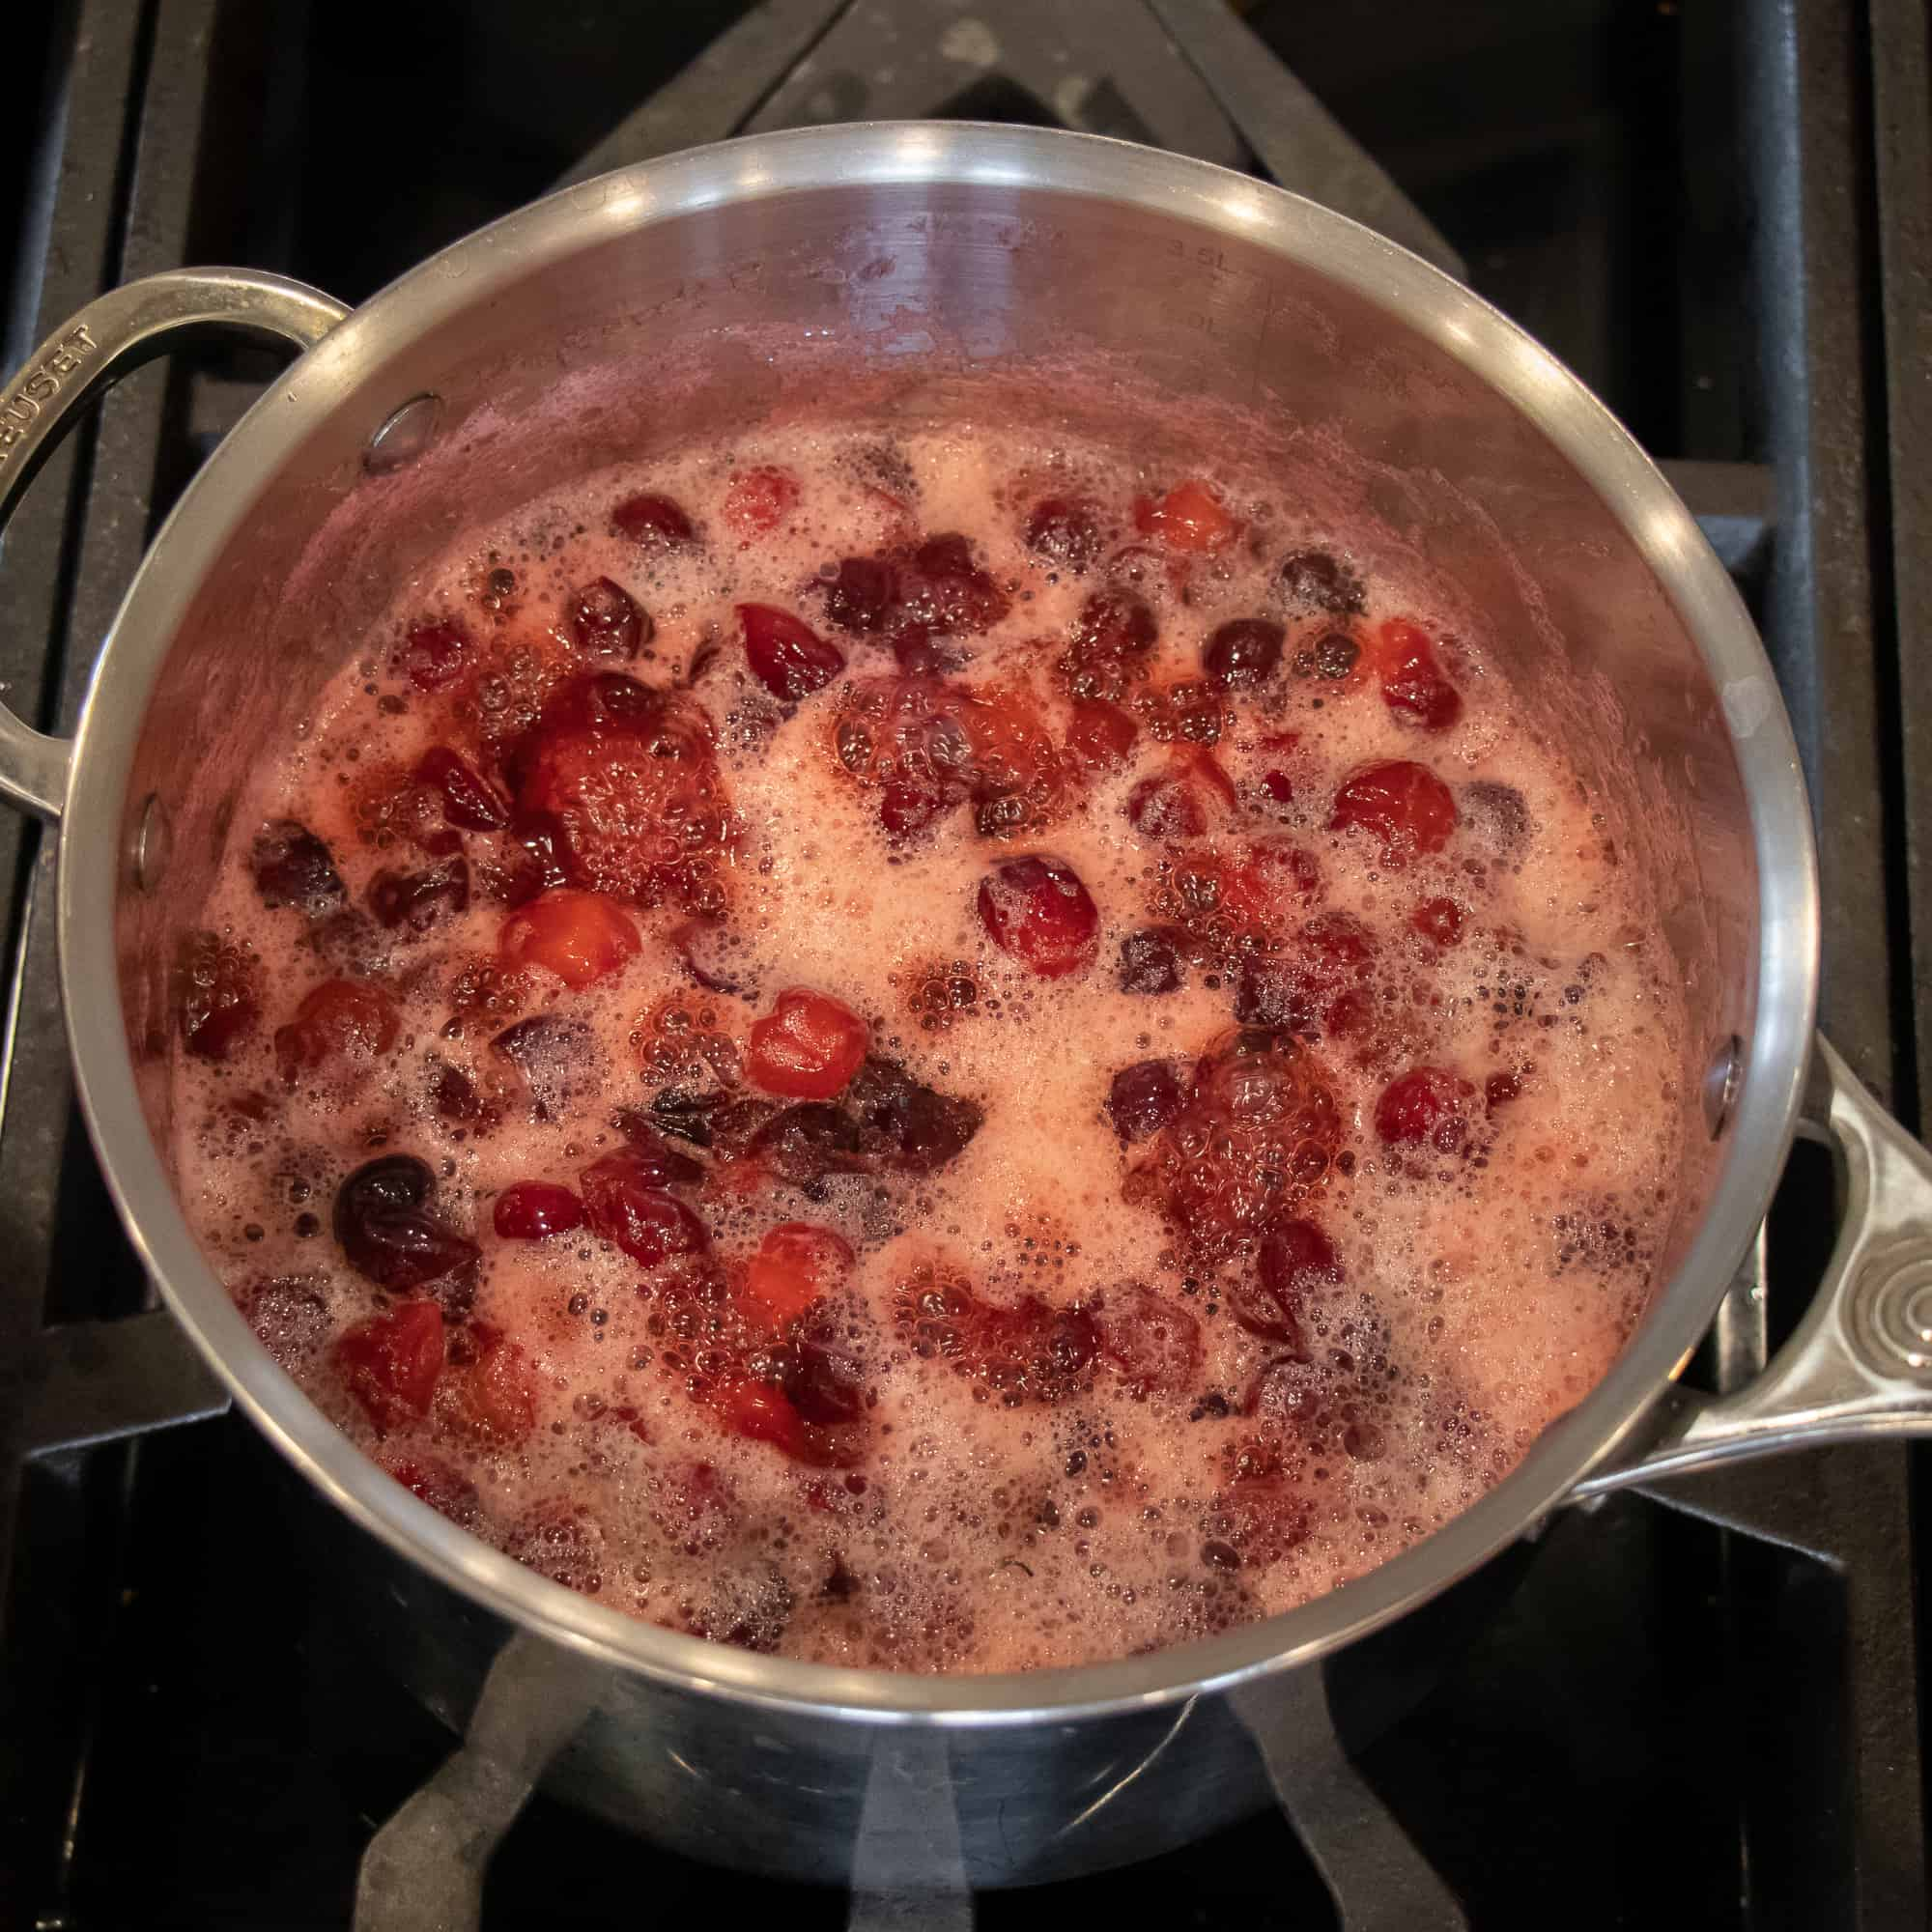 Continue to simmer until the cranberries crack and the sauce thickens.